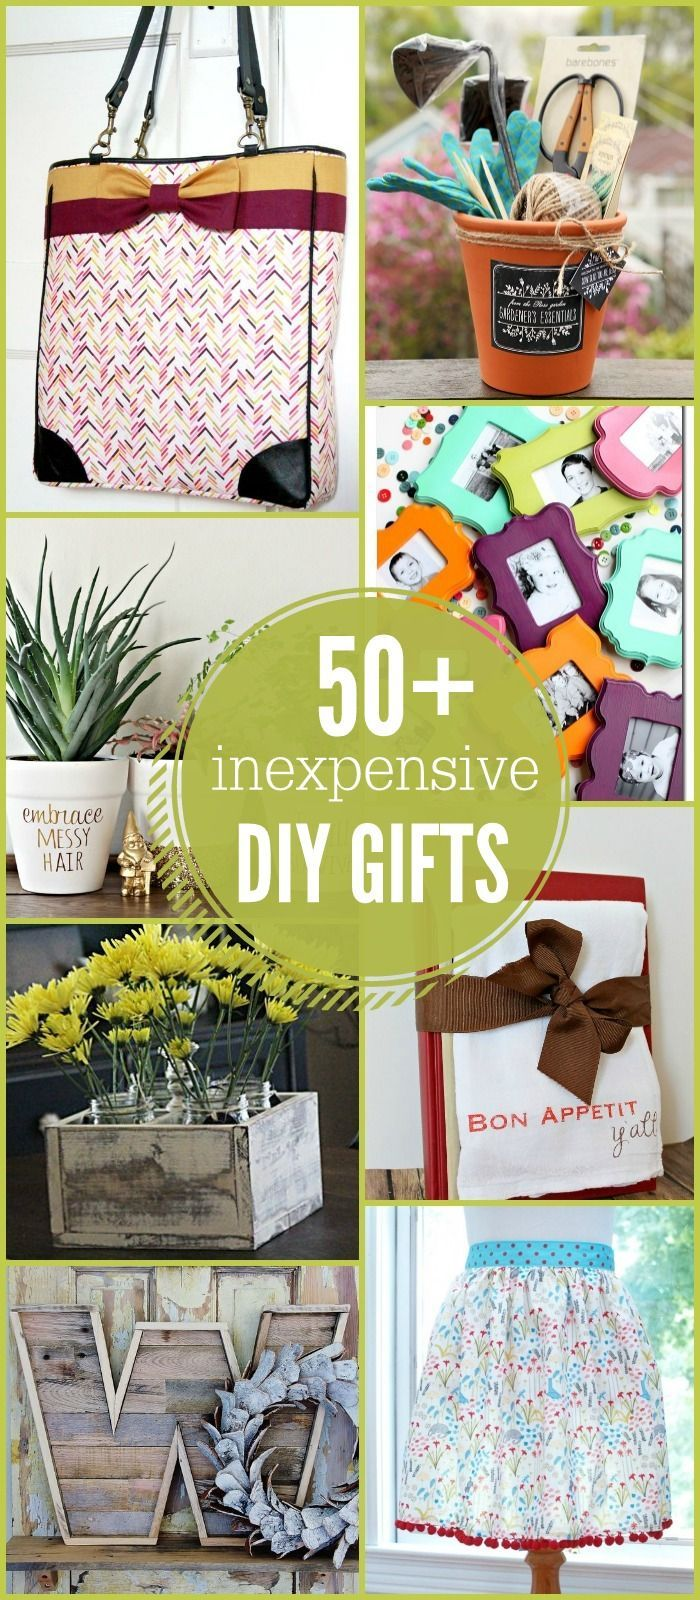 50+ Inexpensive DIY Gift Ideas - so many great ideas to use for birthdays, holidays, or just for fun